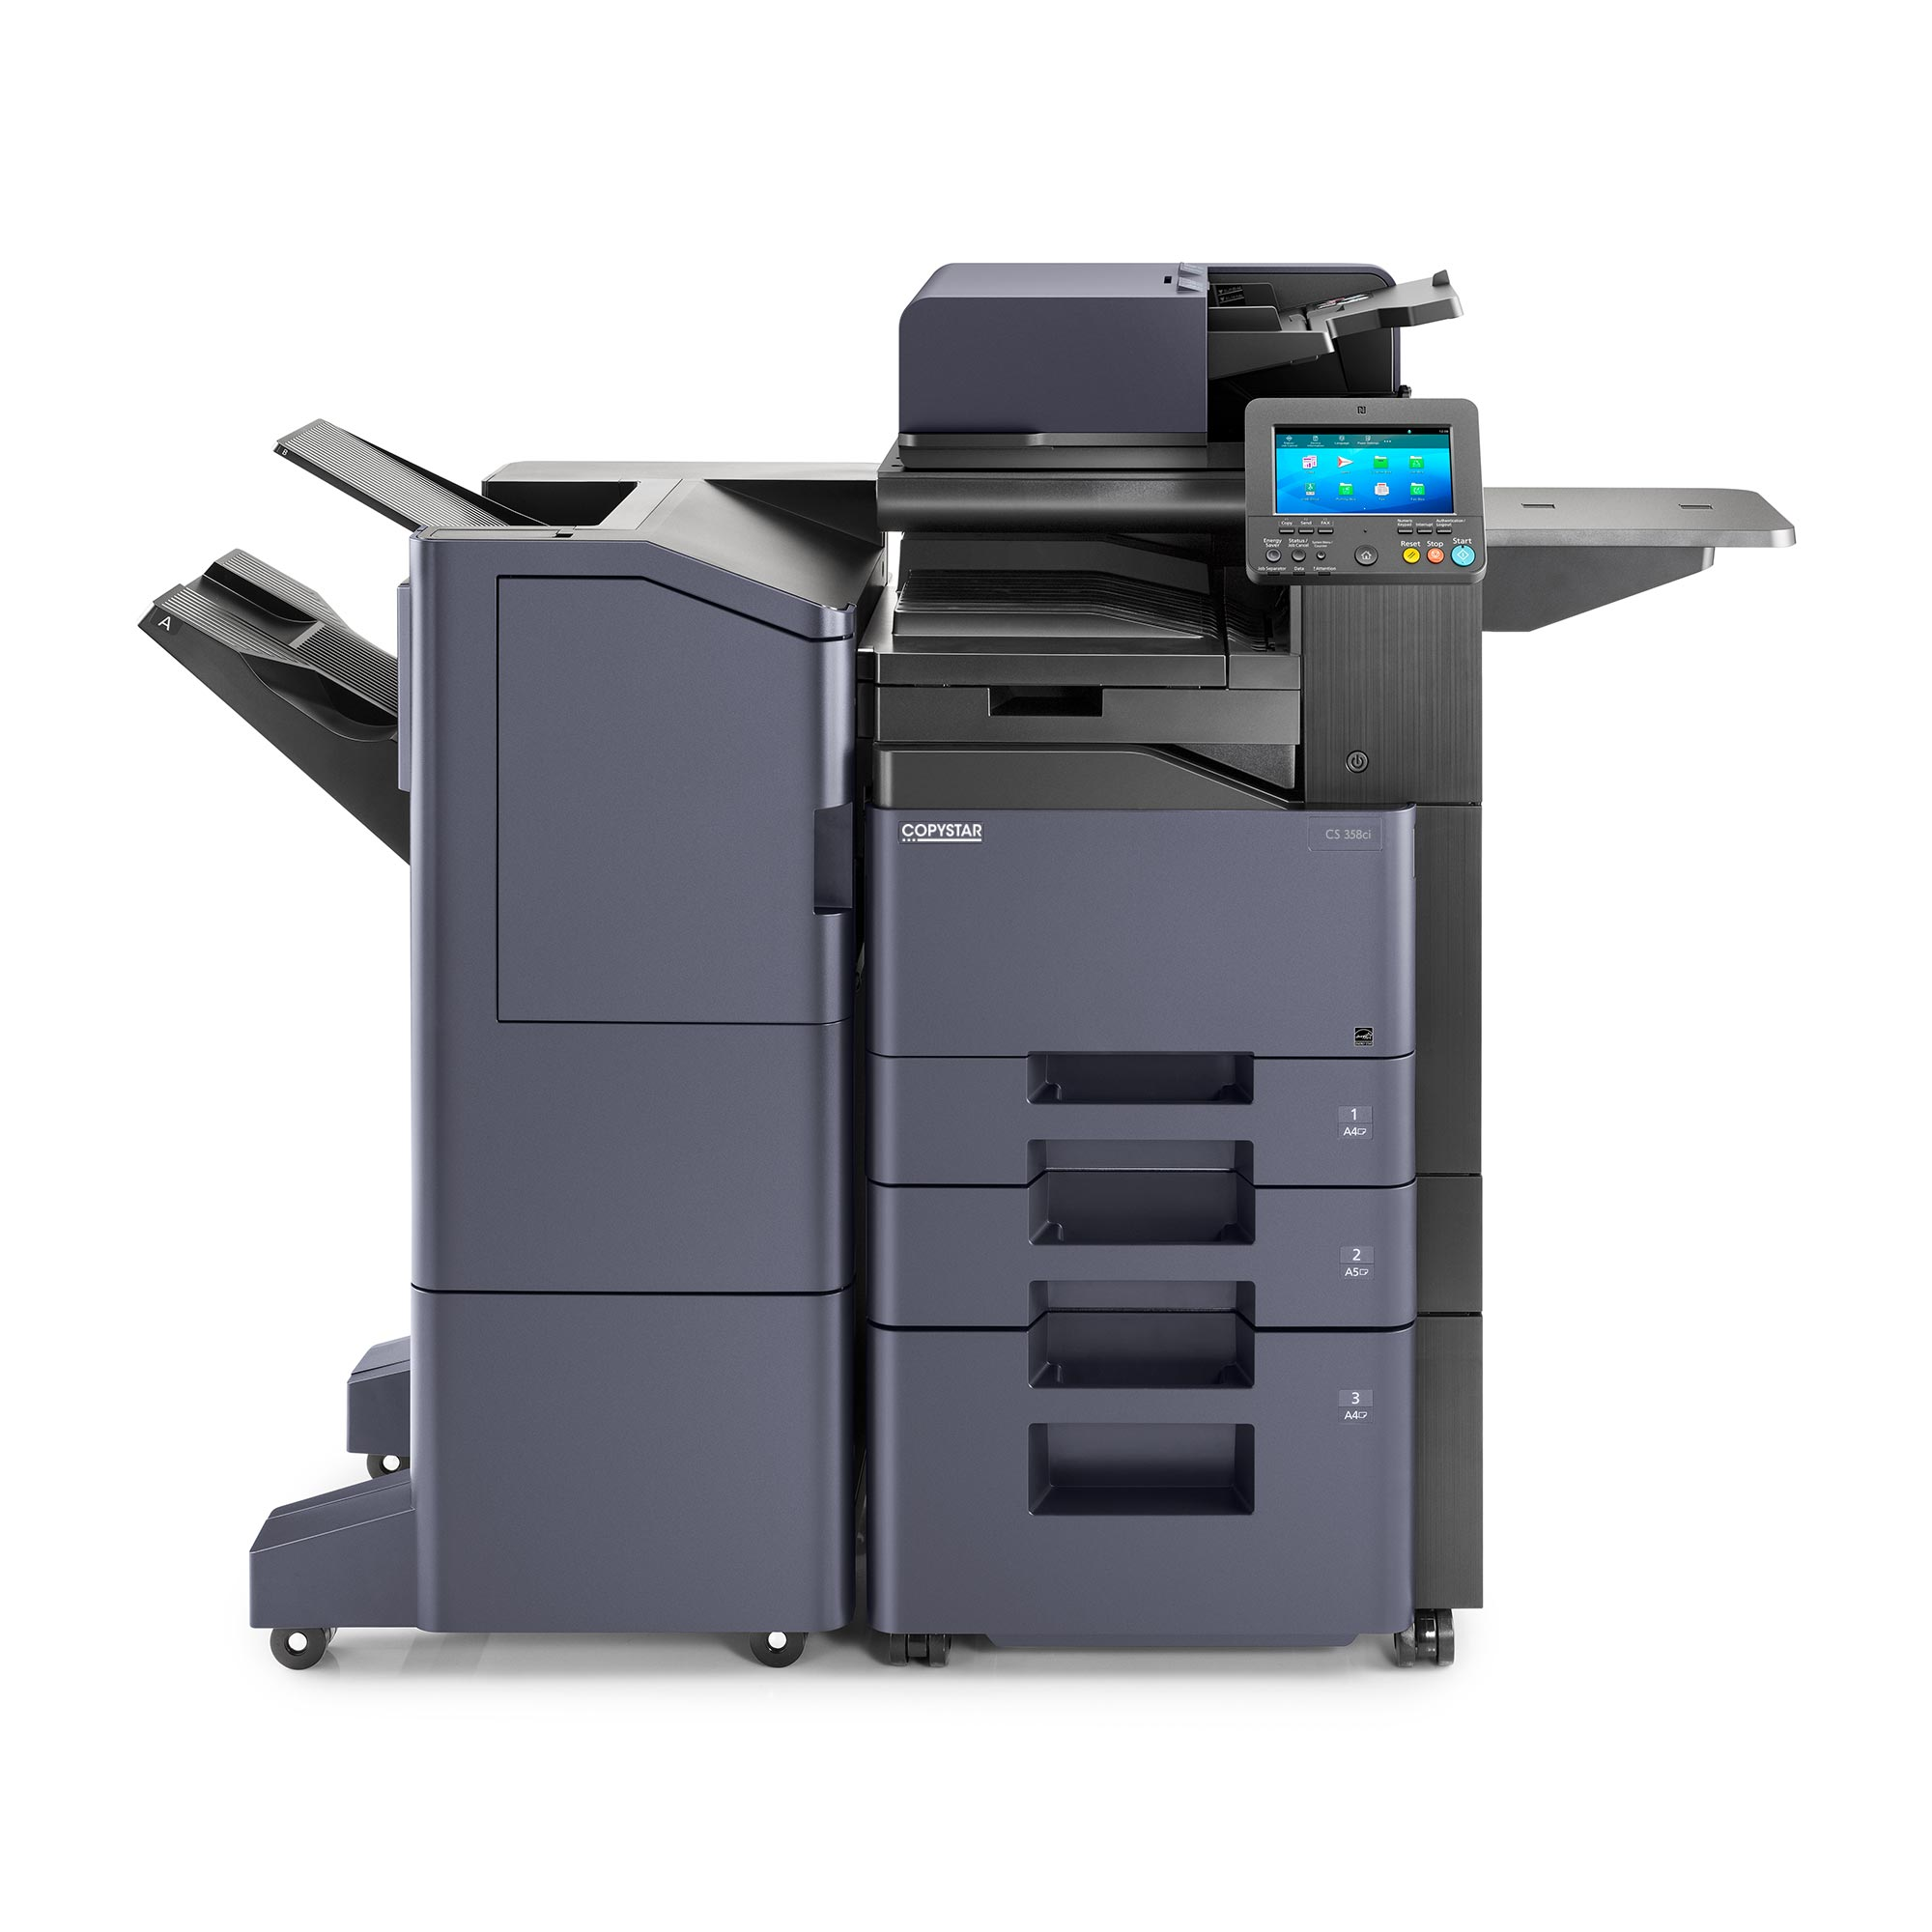 Kyocera CS_358ci ALL IN ONE COPY MACHINE SALES 53172